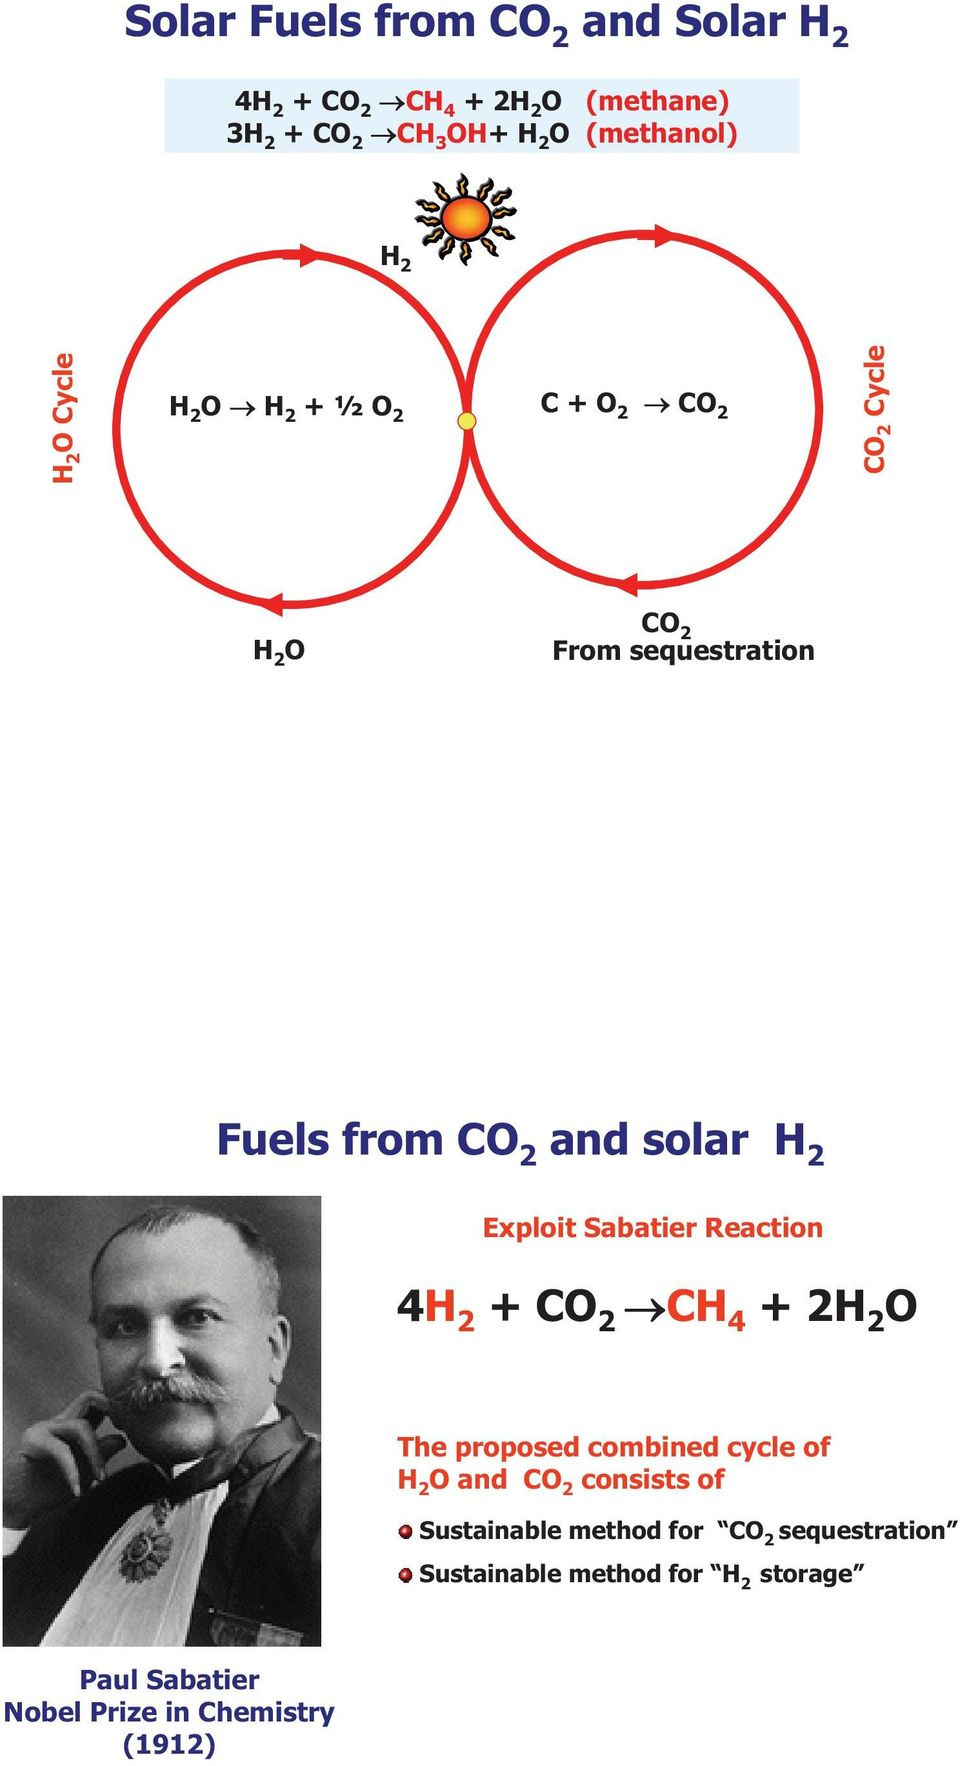 Sabatier Reaction 4 2 + CO 2 C 4 +2H 2 O The proposed combined cycle of H 2 O and CO 2 consists of